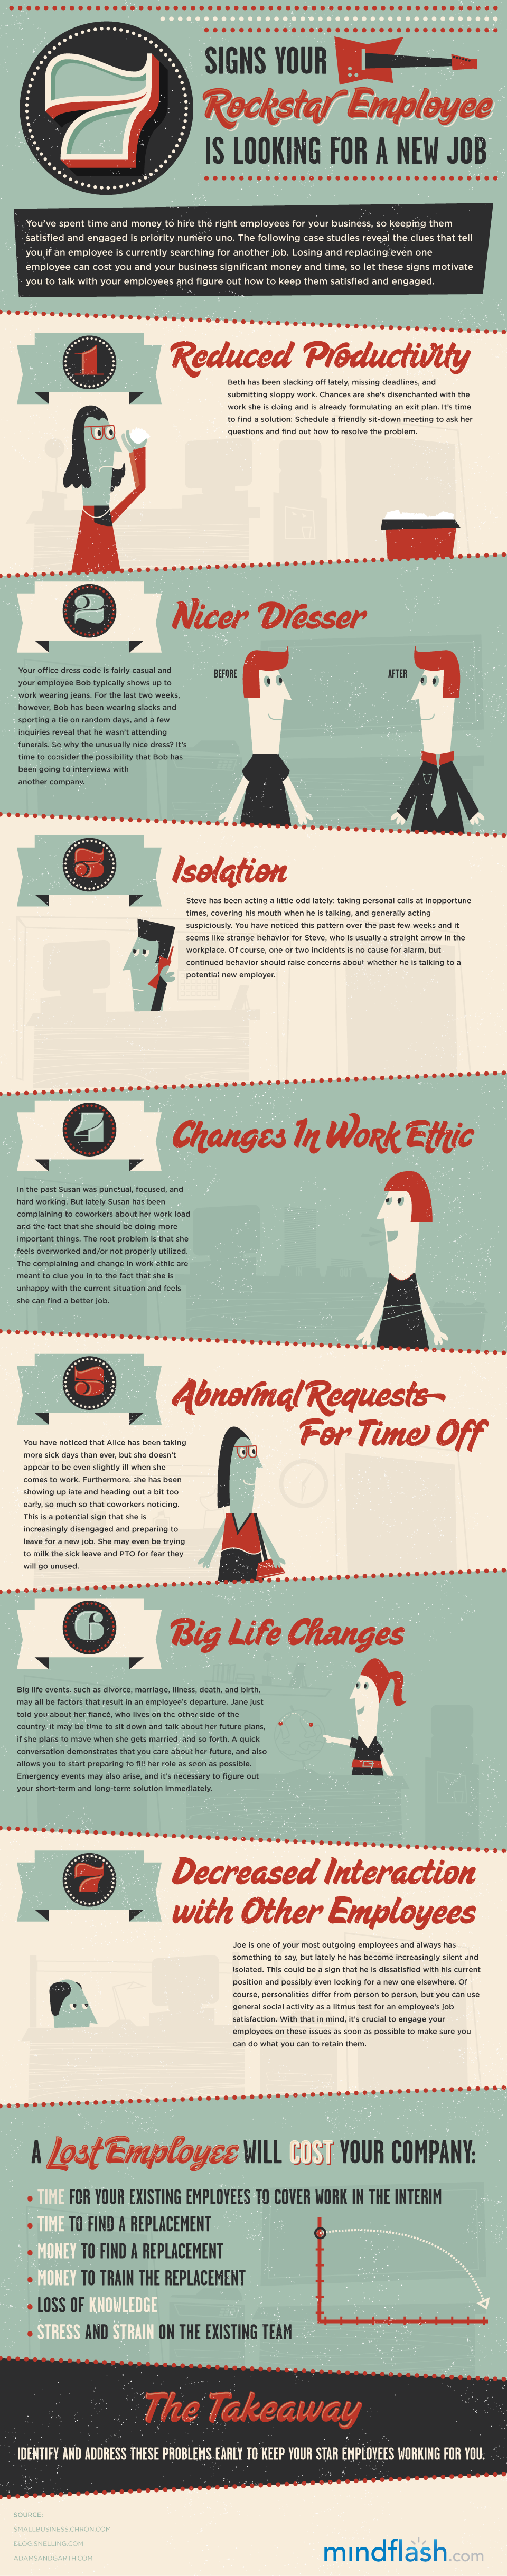 7 Signs Your Rockstar Employee Is Looking For a New Job